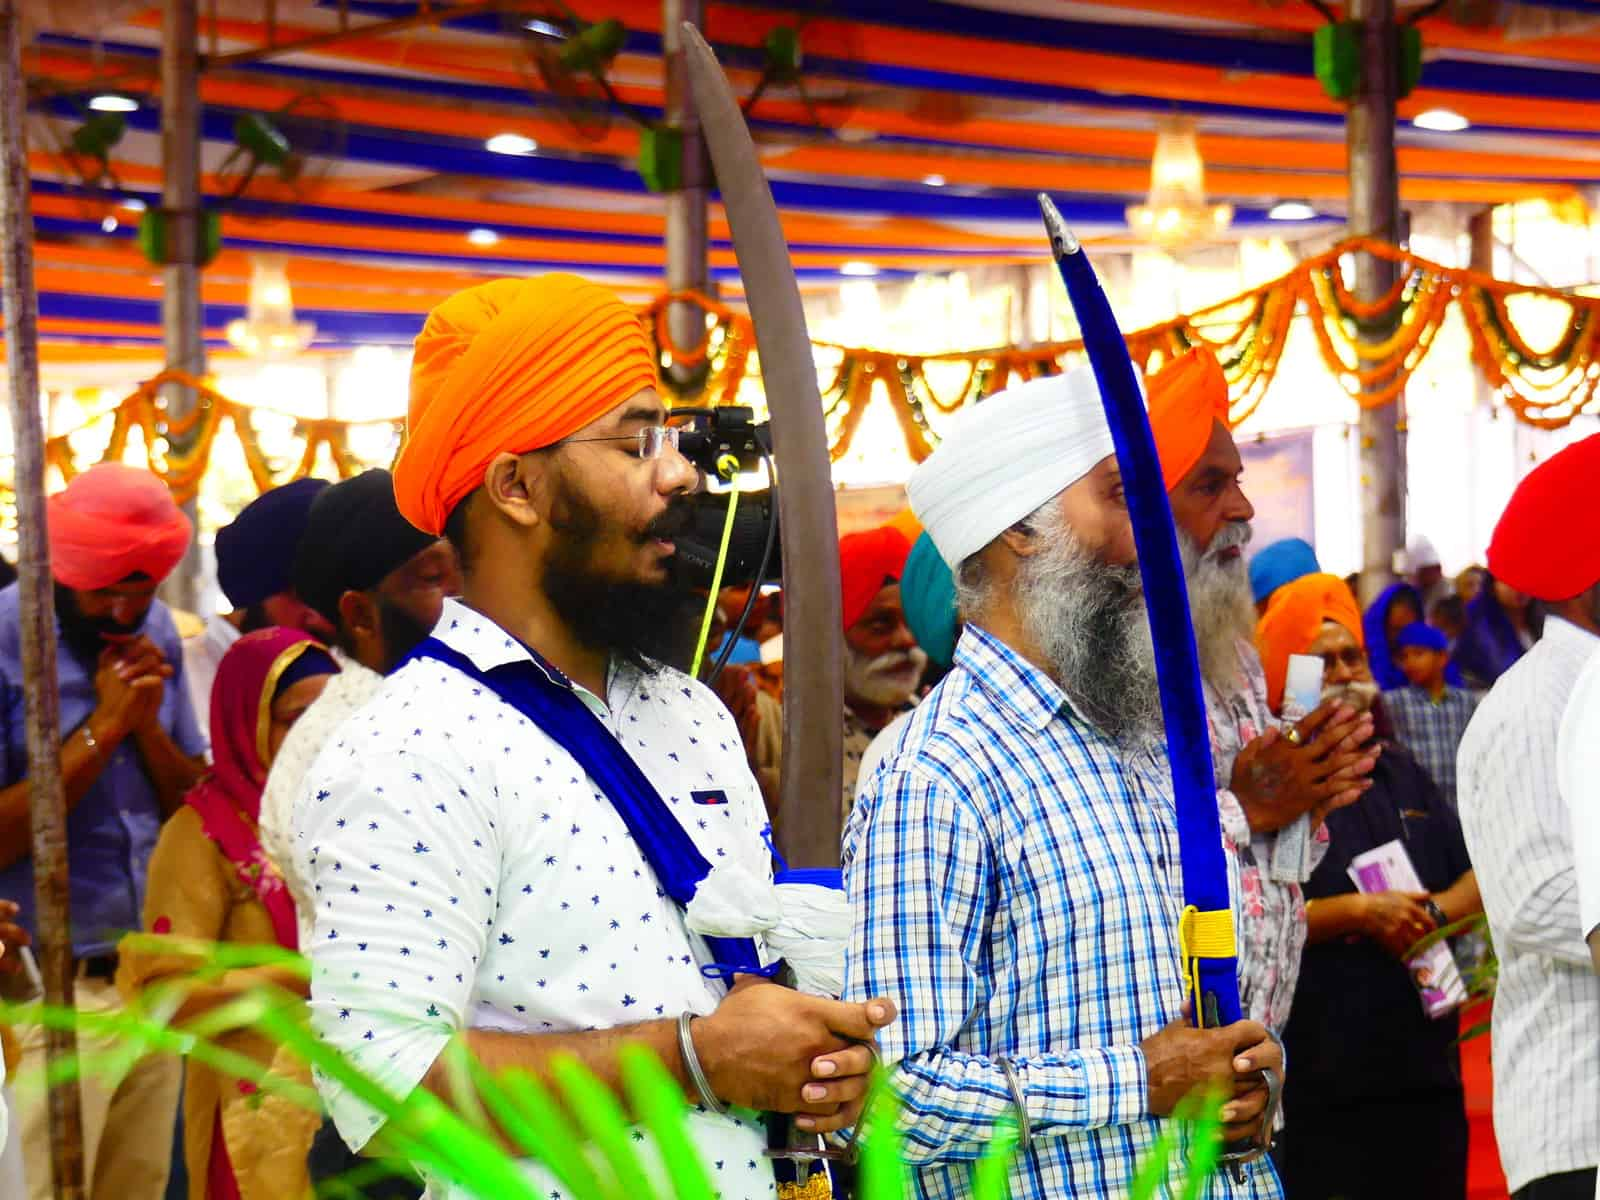 Guru Nanak jayanti celebrated with gaiety, devotion by Sikhs in Telangana. Photo: Mohammed Hussain